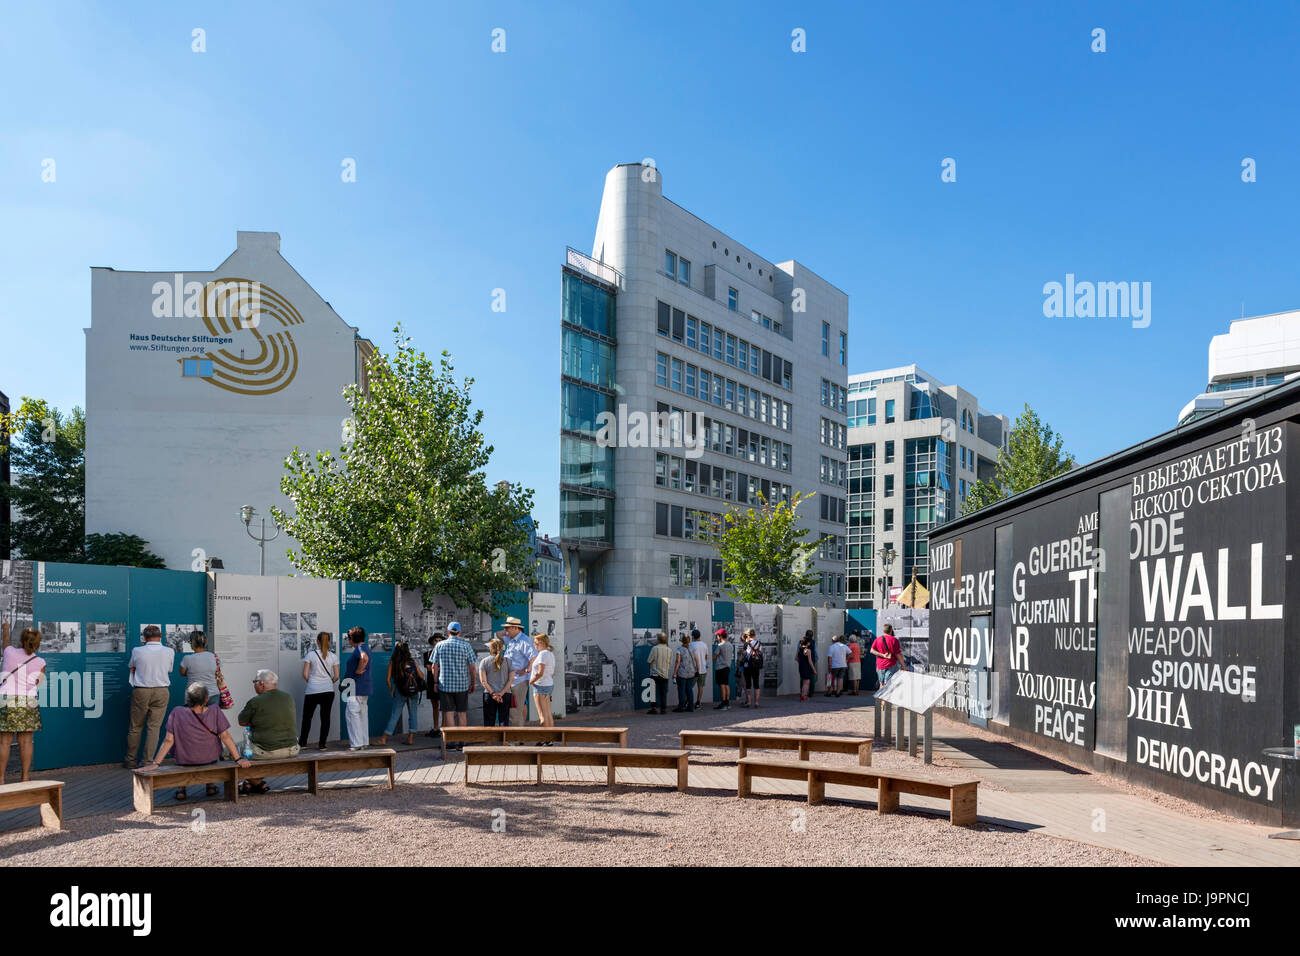 Black Box, an information pavilion on the history of Checkpoint Charlie and the Berlin Wall, Berlin, Germany - Stock Image